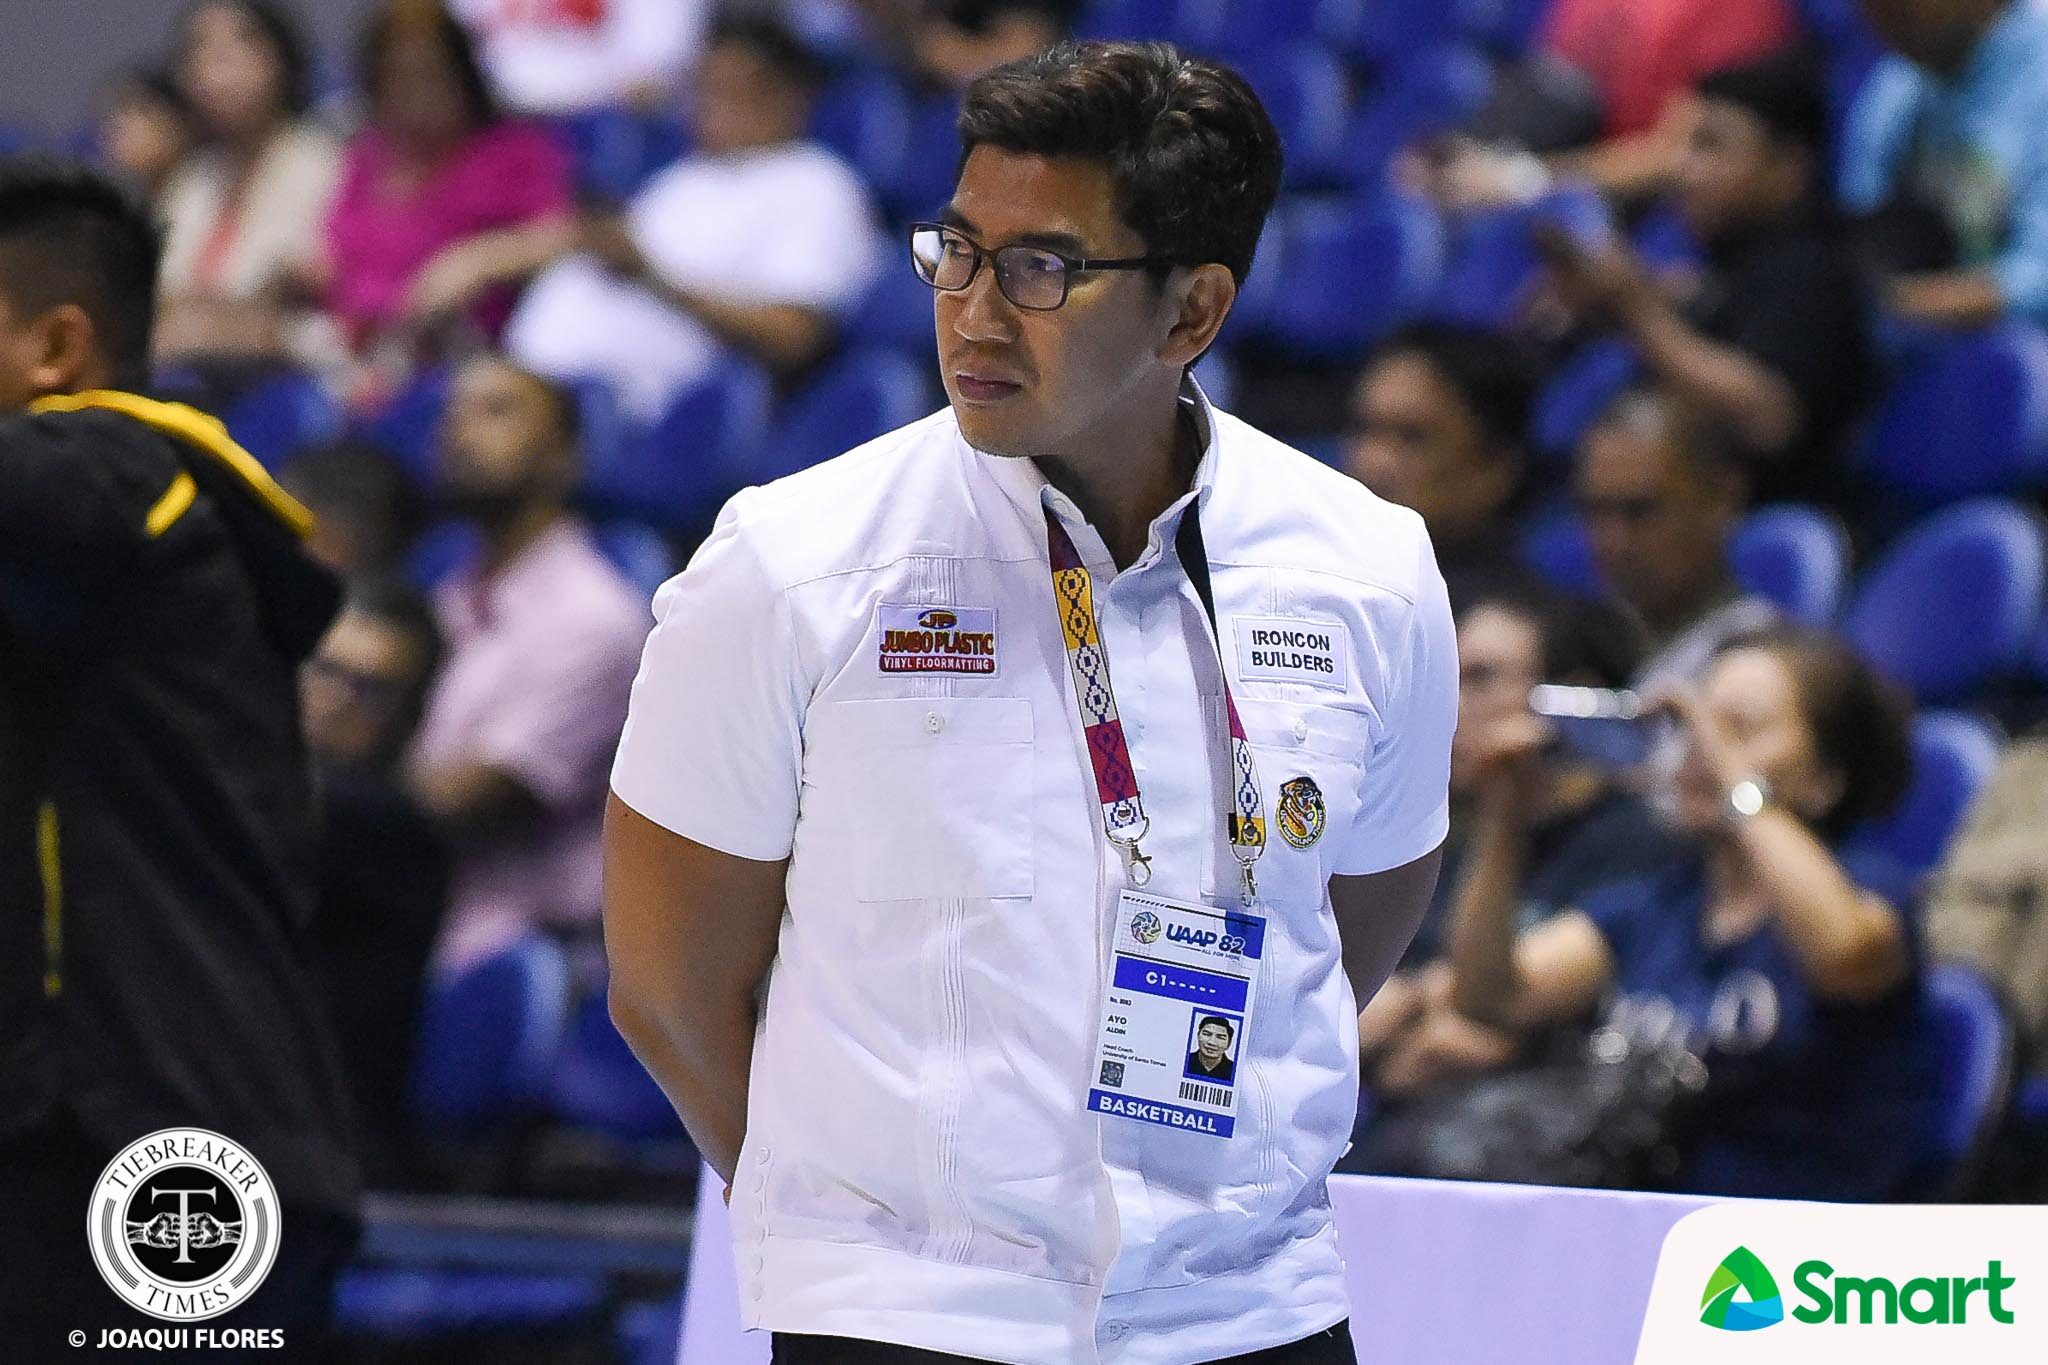 Tiebreaker Times CHED chairperson says UST heads should be accountable for Bicol bubble Basketball News UAAP UST  UST Men's Basketball UAAP Season 83 Men's Basketball UAAP Season 83 Prospero De Vera III Commission on Higher Education Aldin Ayo